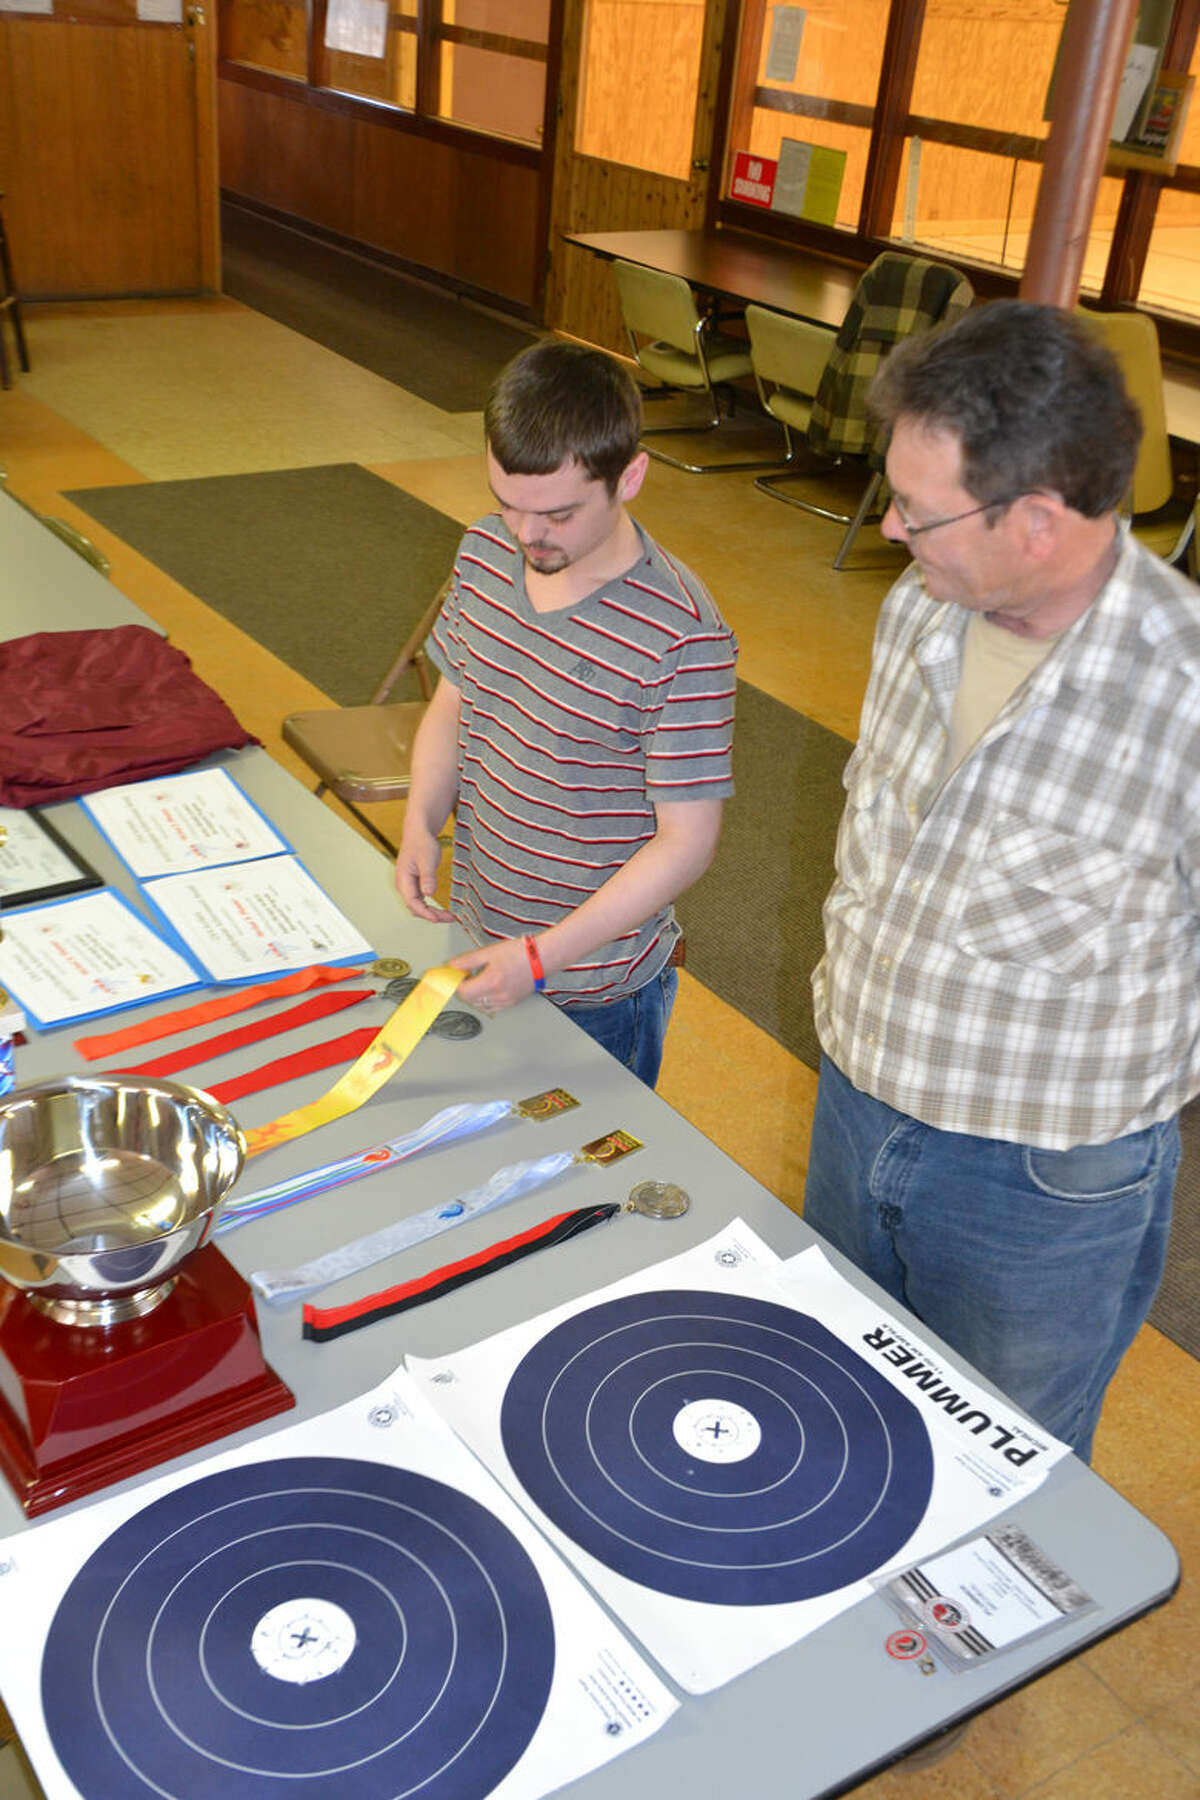 Michael Plummer and his dad, Steve Plummer, look at various archery awards. Steve also is a tournament archer. He placed third in his division at the Indoor Nationals.